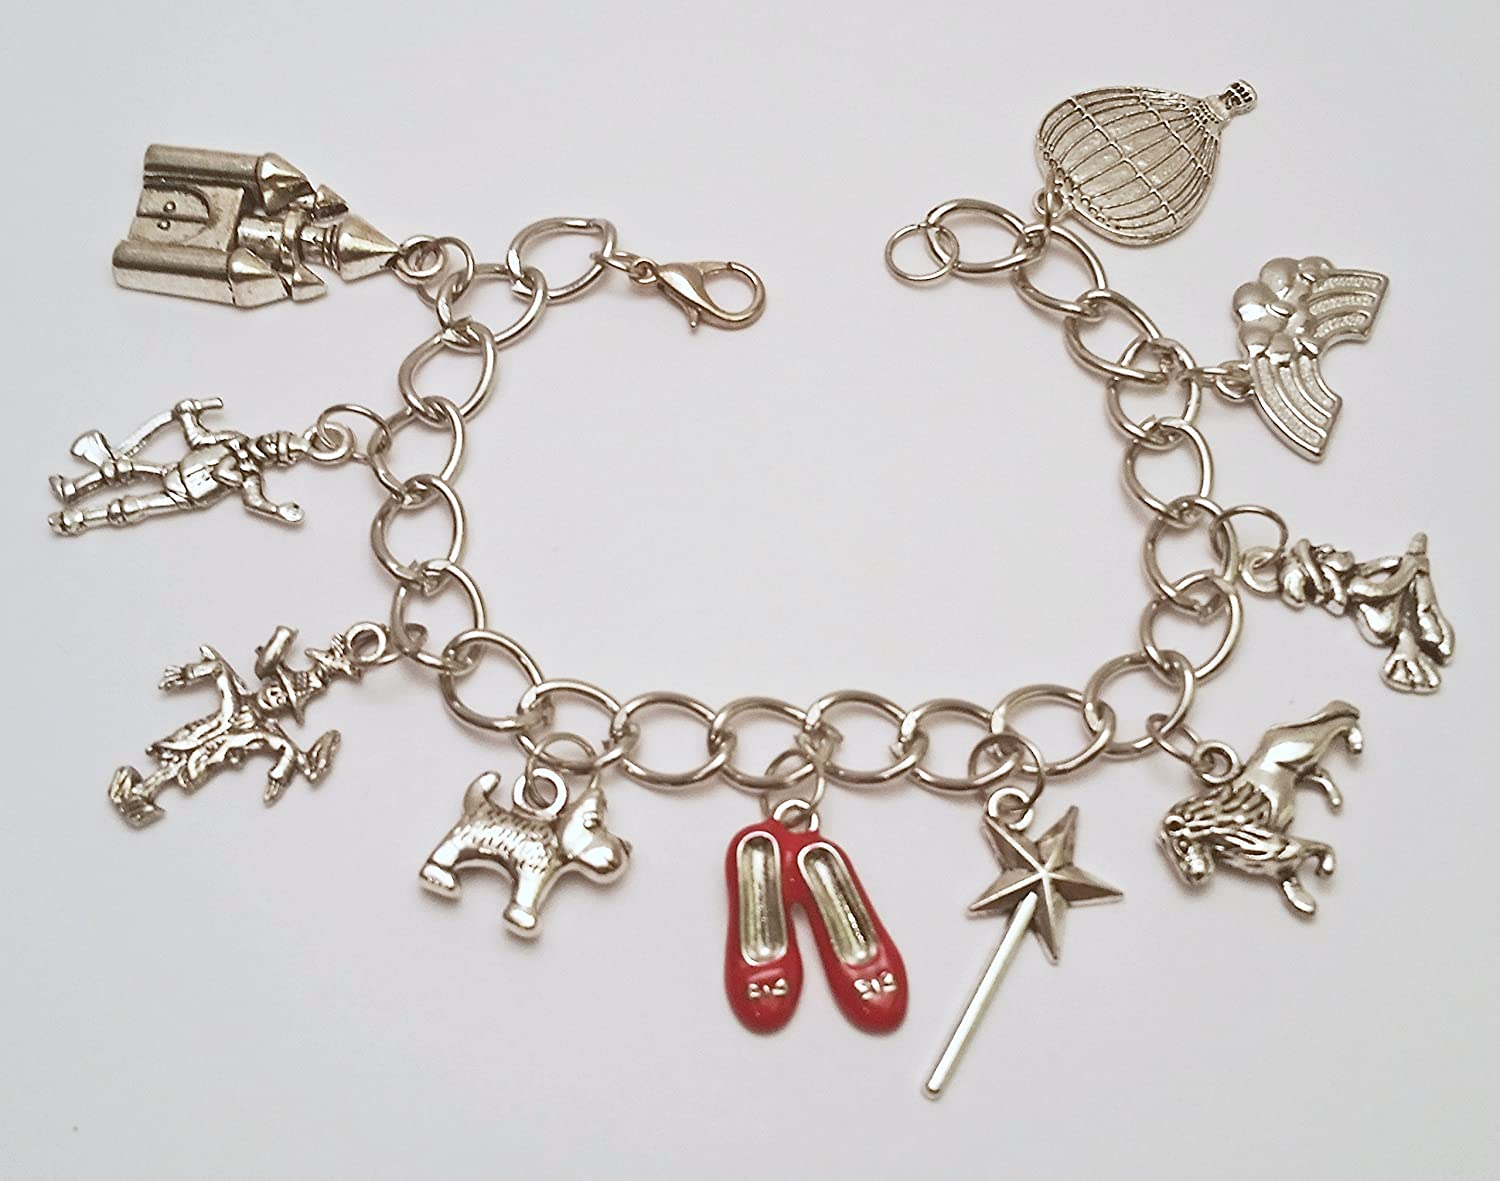 Wizard of Oz charm bracelet with 20 Wizard of Oz themed charms and 38 hand wrapped oil slick metallic rainbow beads